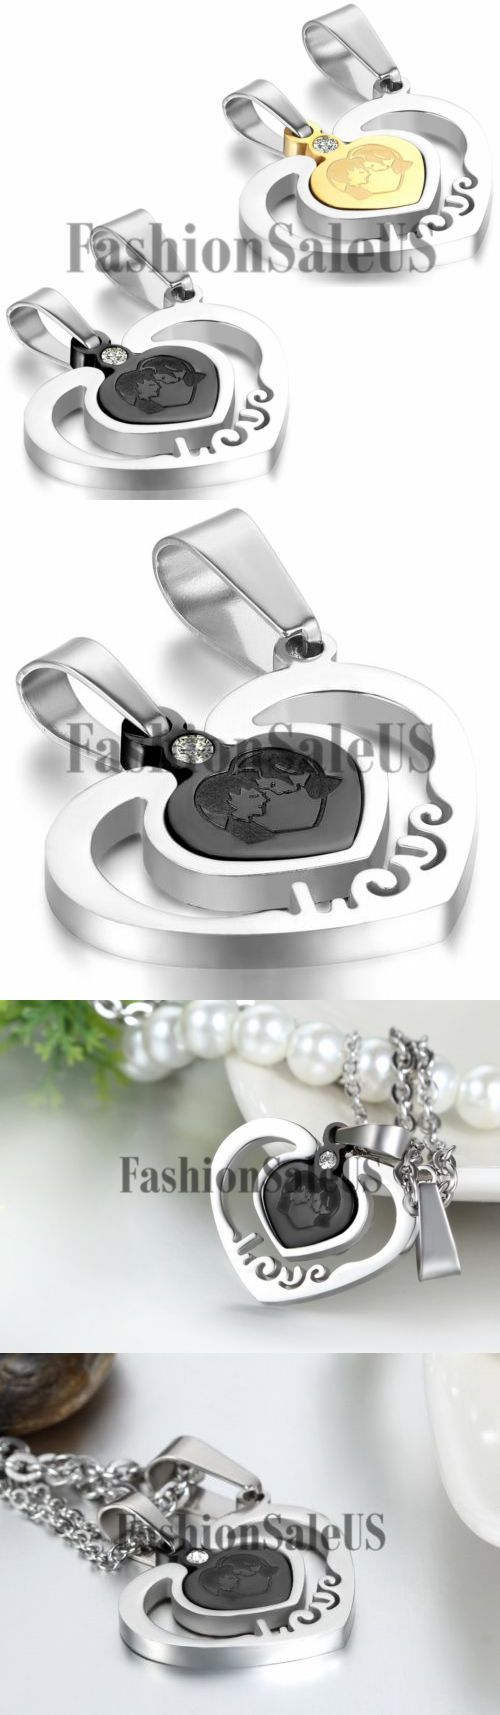 Valentine Gifts: New Couples Women Men Stainless Steel Love Heart Puzzle Necklaces Valentine Gift -> BUY IT NOW ONLY: $7.94 on eBay!